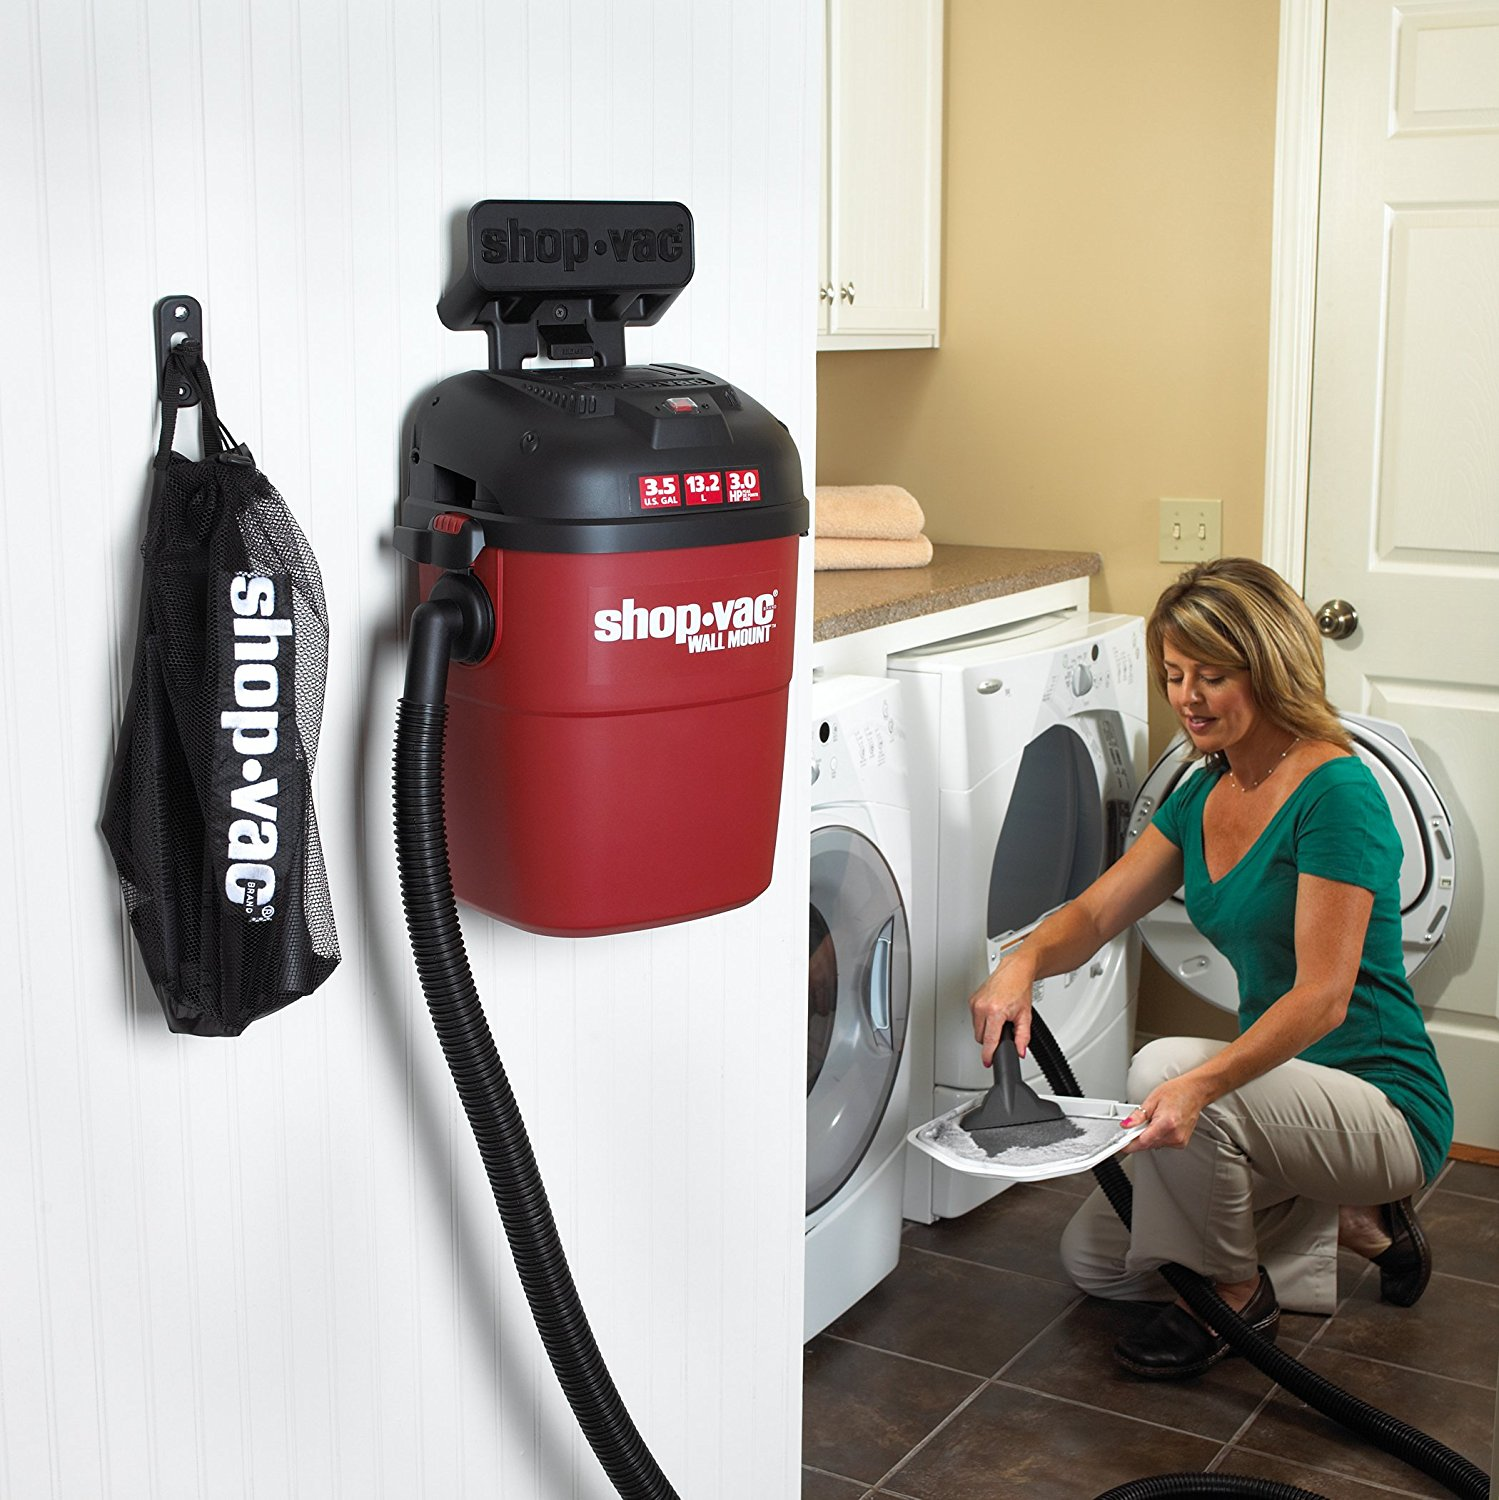 Shop Vac 3 5 Gallon 3 0 Peak Hp Wall Mount Wet Dry Vacuum